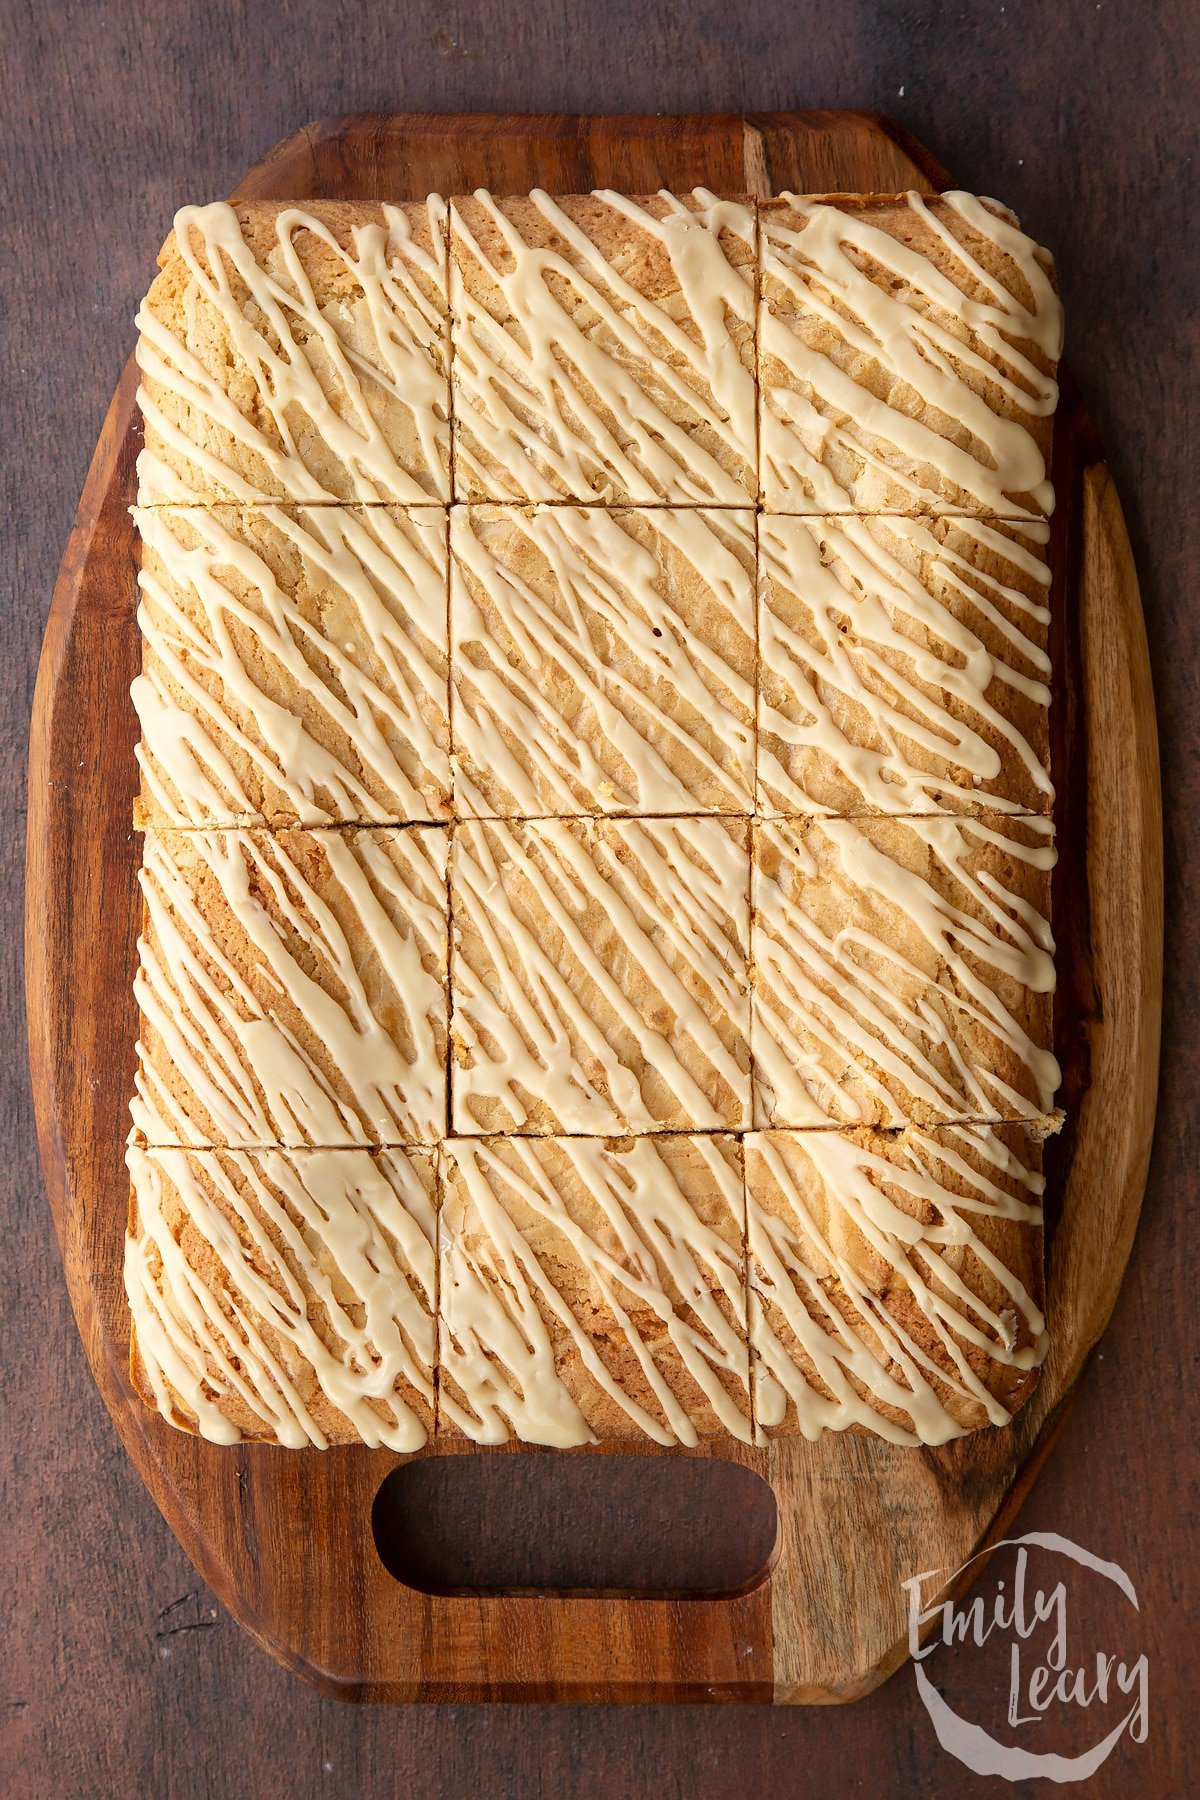 Freshly baked Baileys blondie drizzled with Baileys icing, cut into 12 pieces on a wooden board.